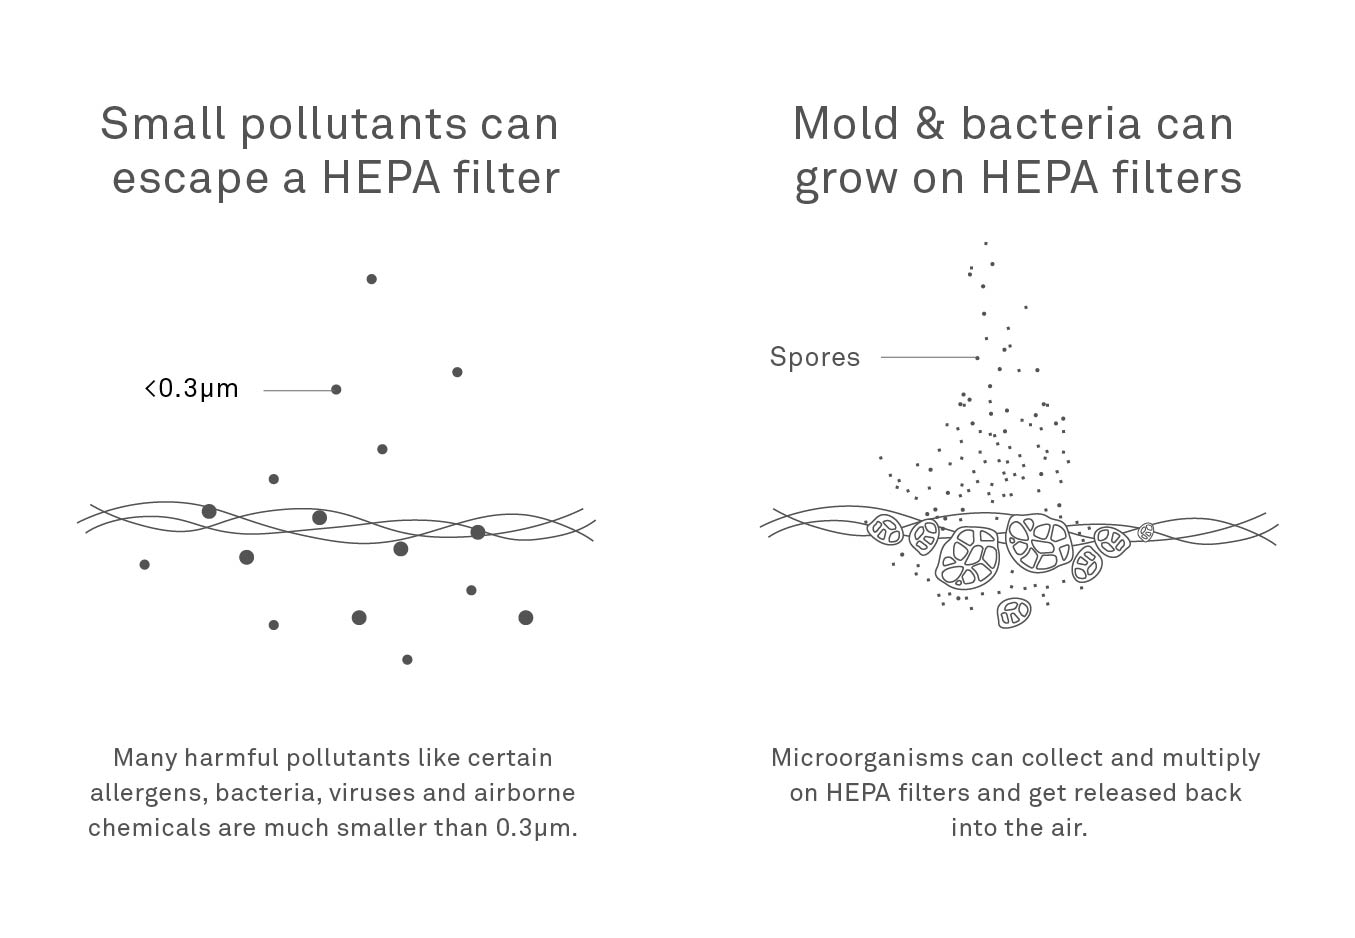 HEPA filter drawbacks include small particles passing through and possibility of mold growth on filter surface.